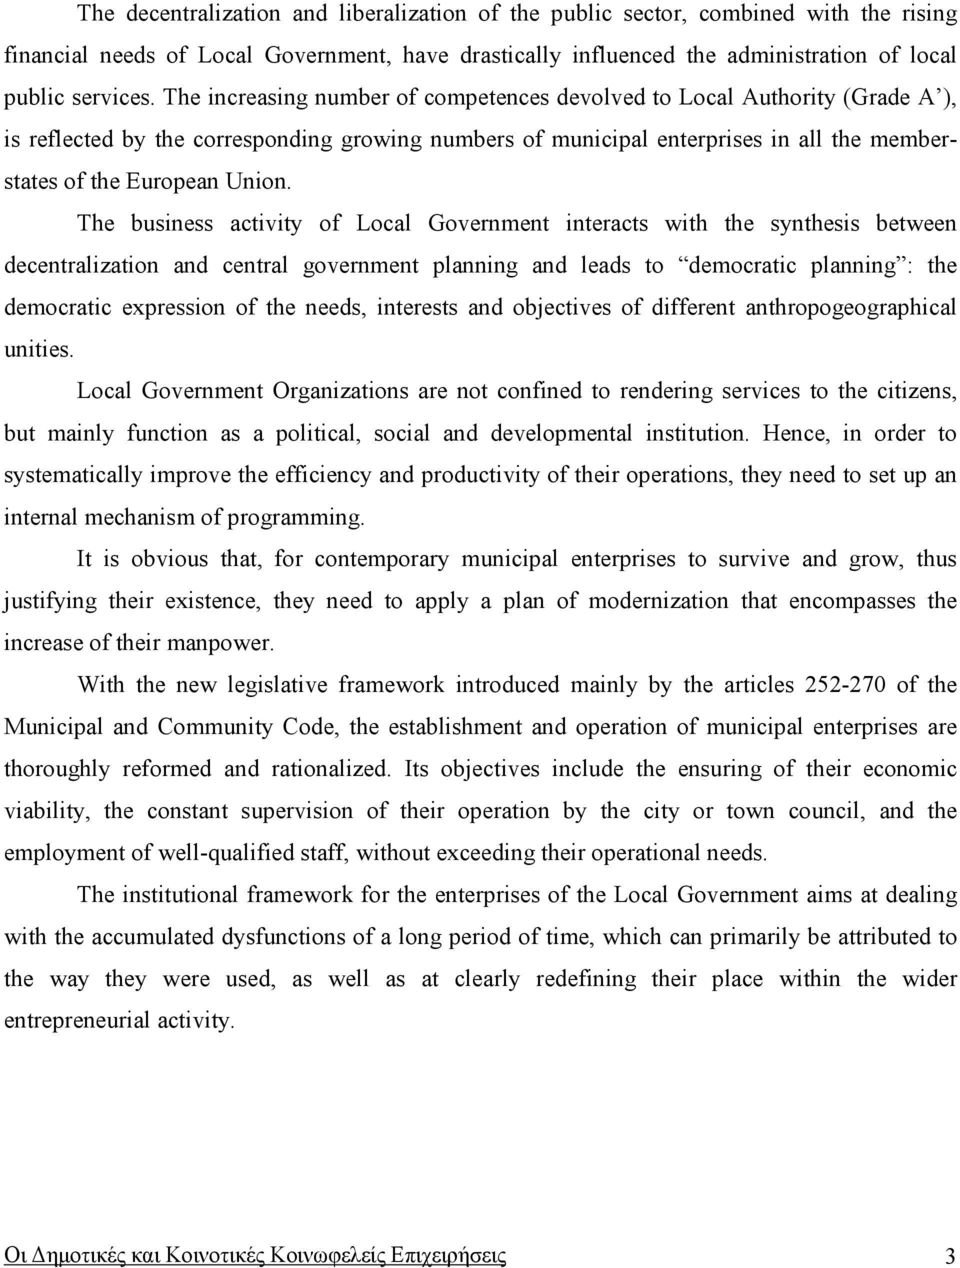 The business activity of Local Government interacts with the synthesis between decentralization and central government planning and leads to democratic planning : the democratic expression of the